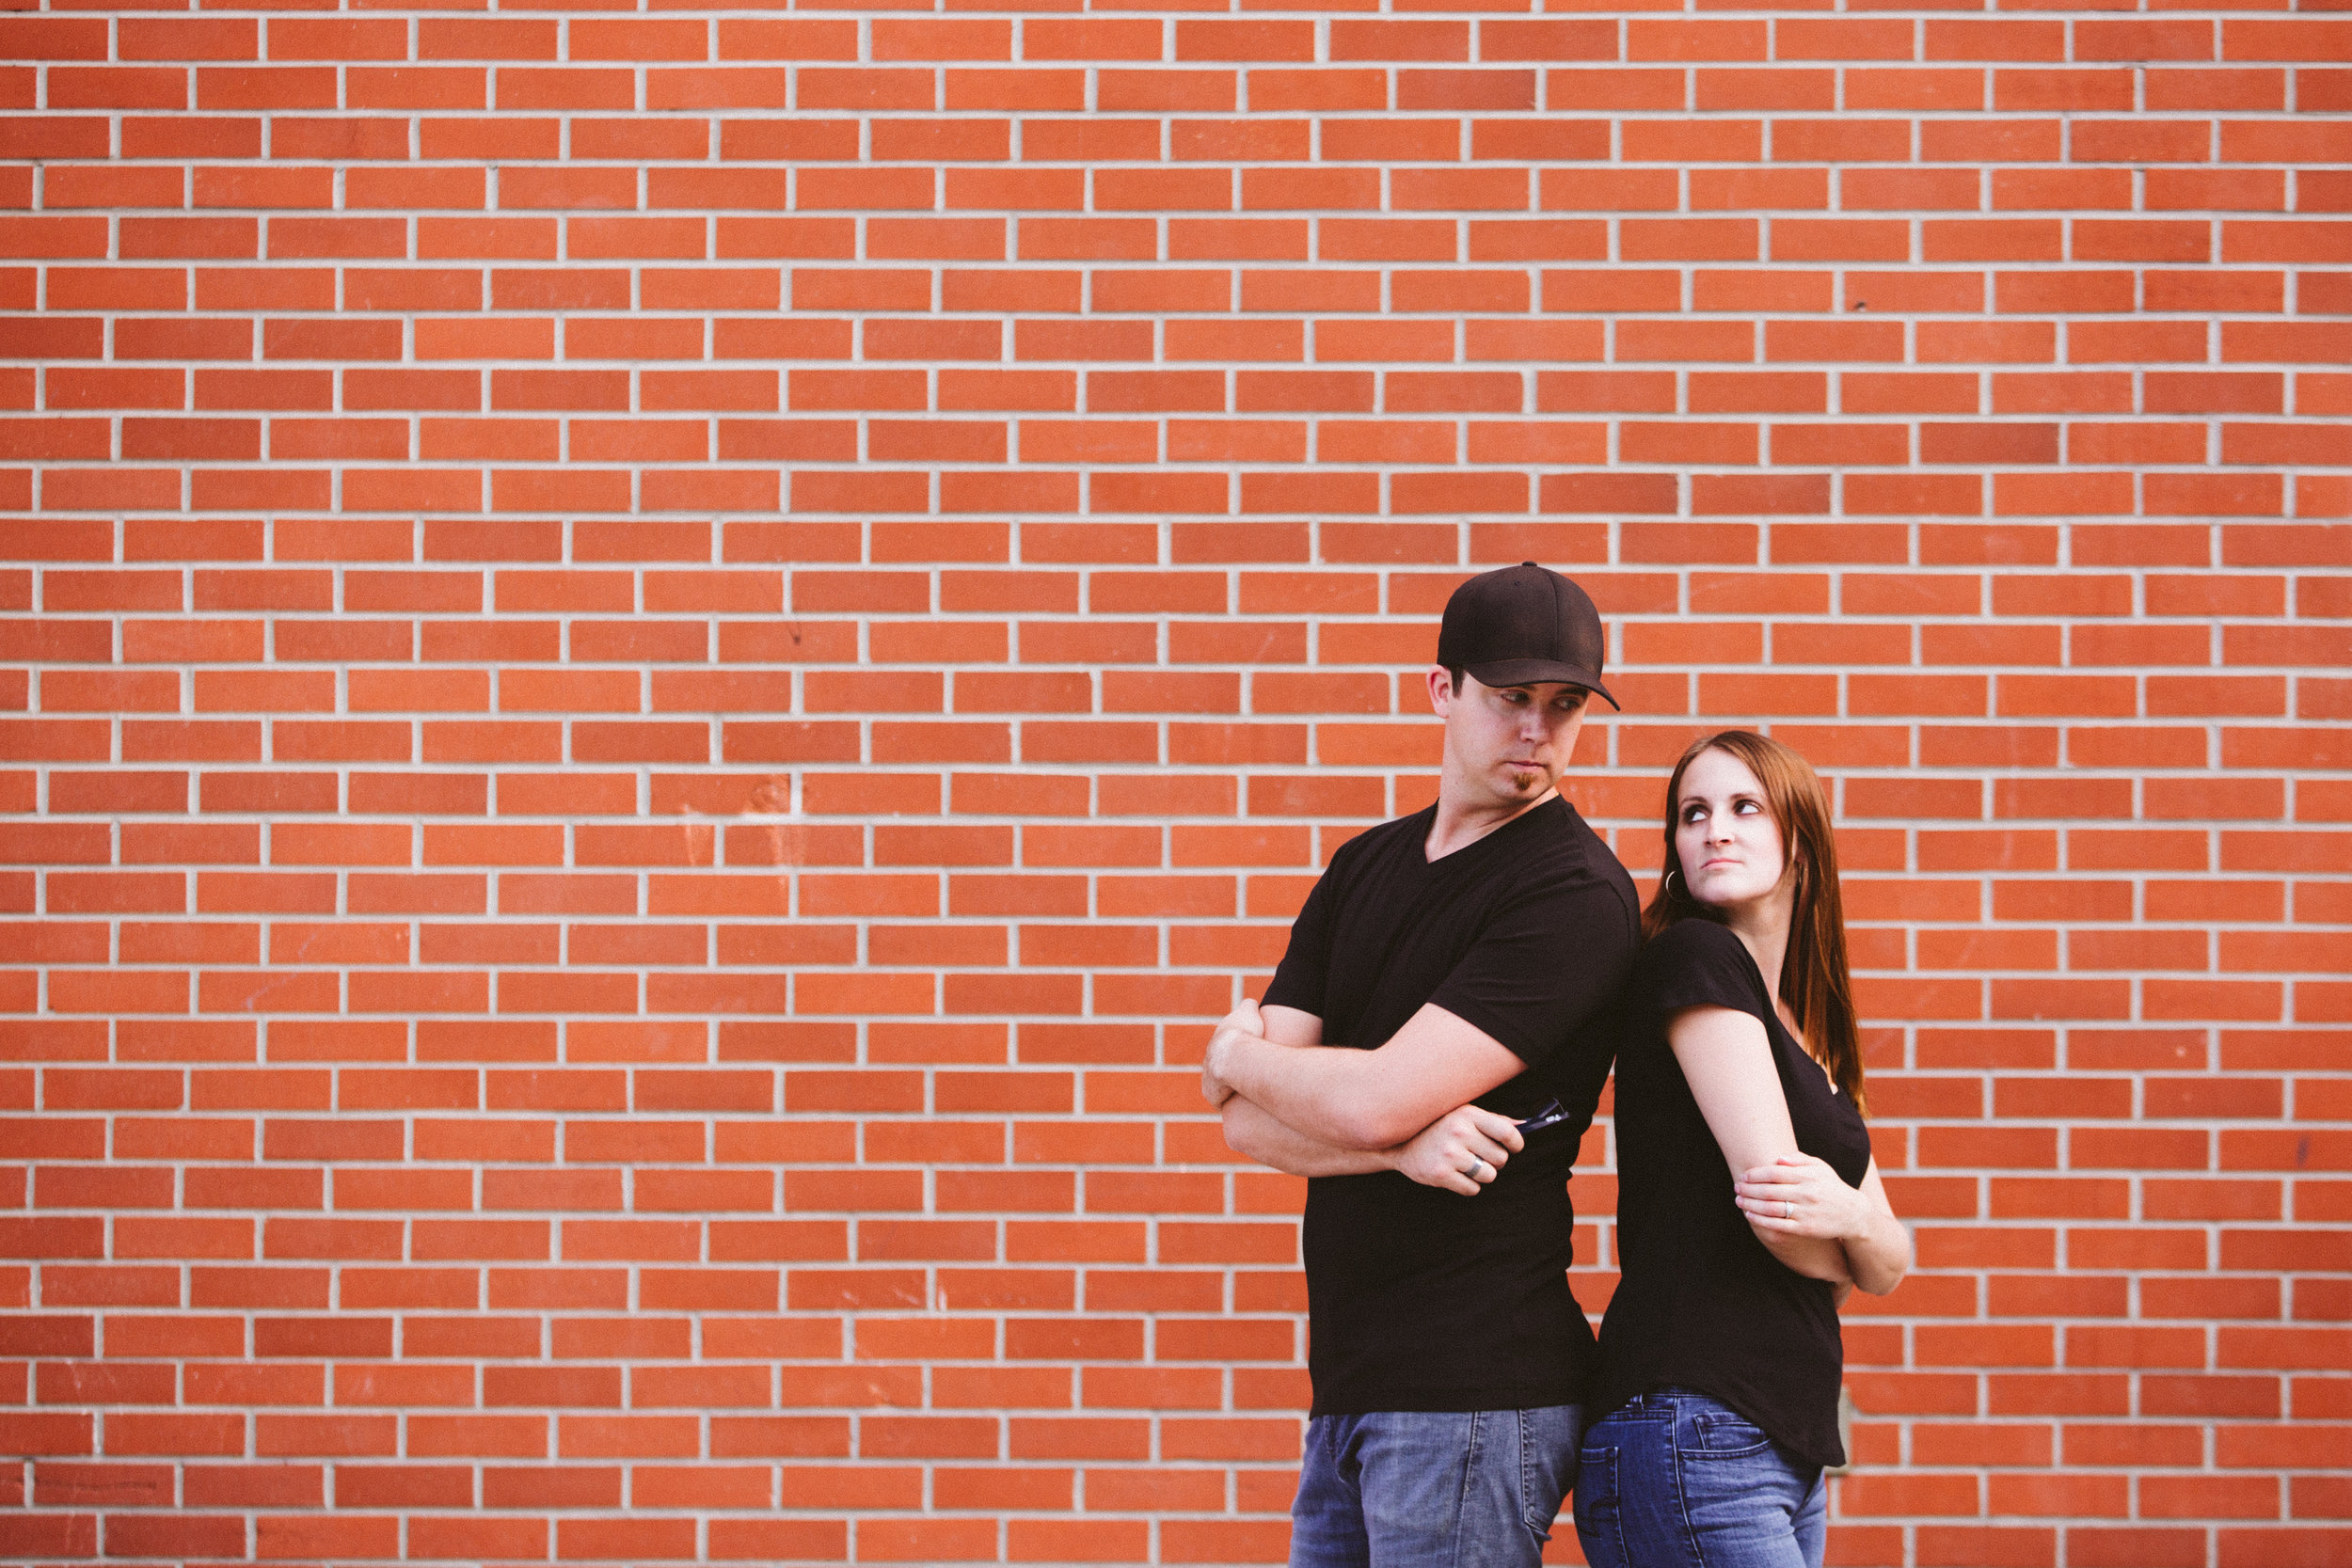 CM Engagement Brick Wall-15.jpg